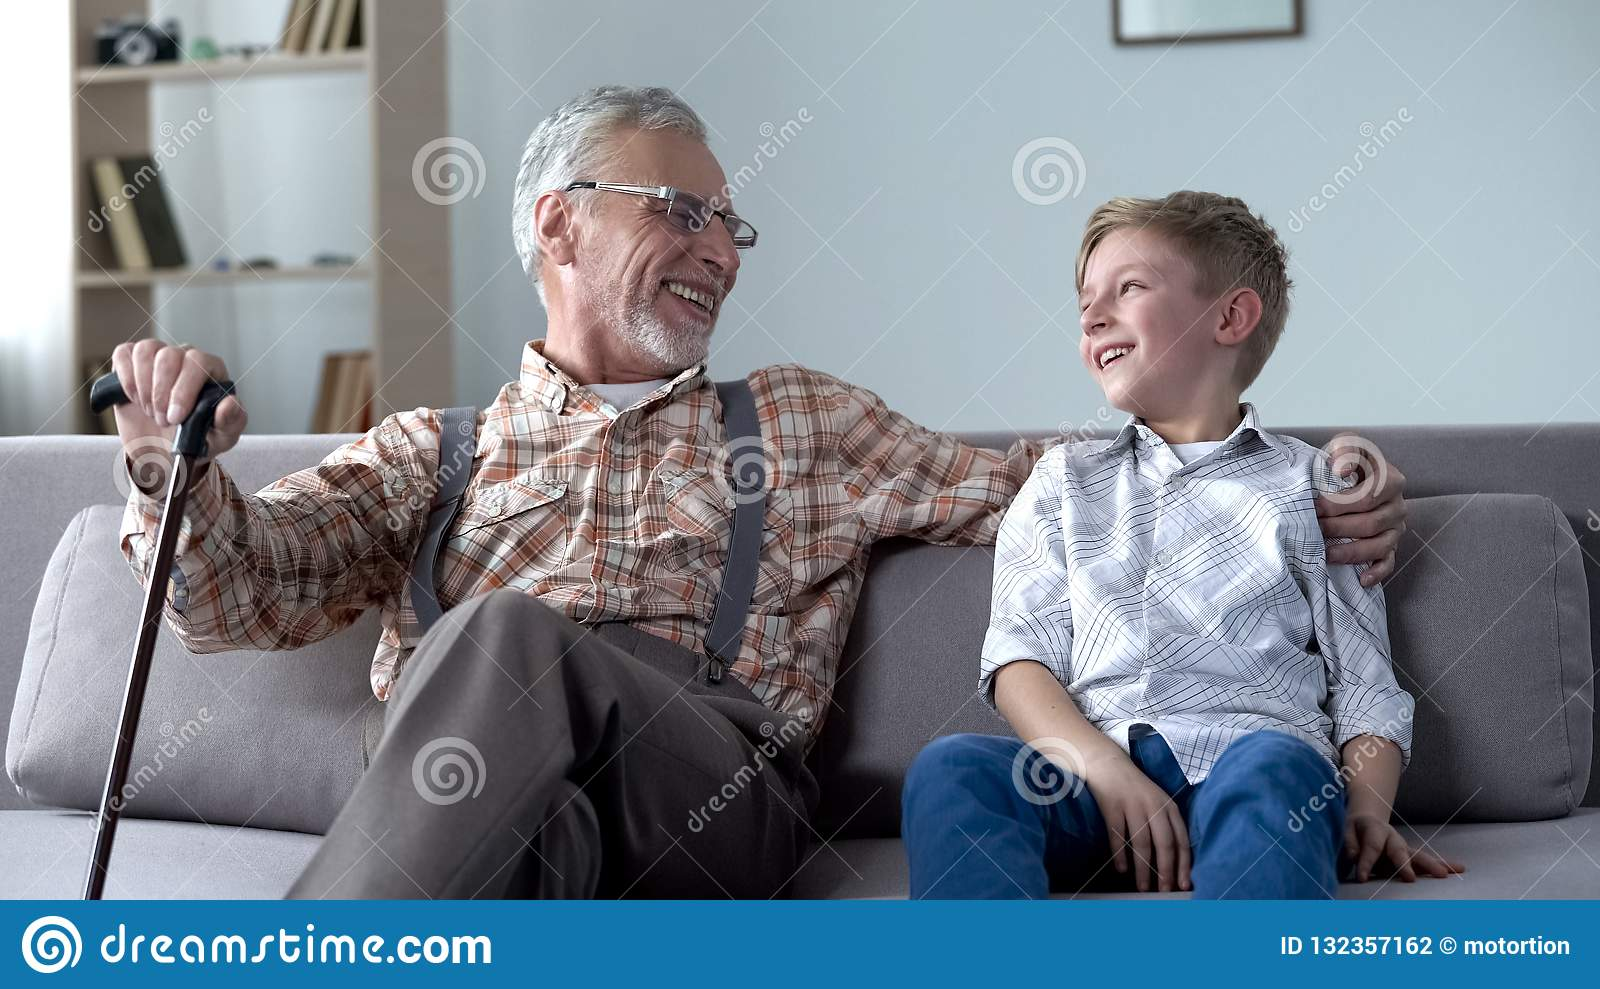 Grandson and grandpa laughing, joking, having good time together, communication